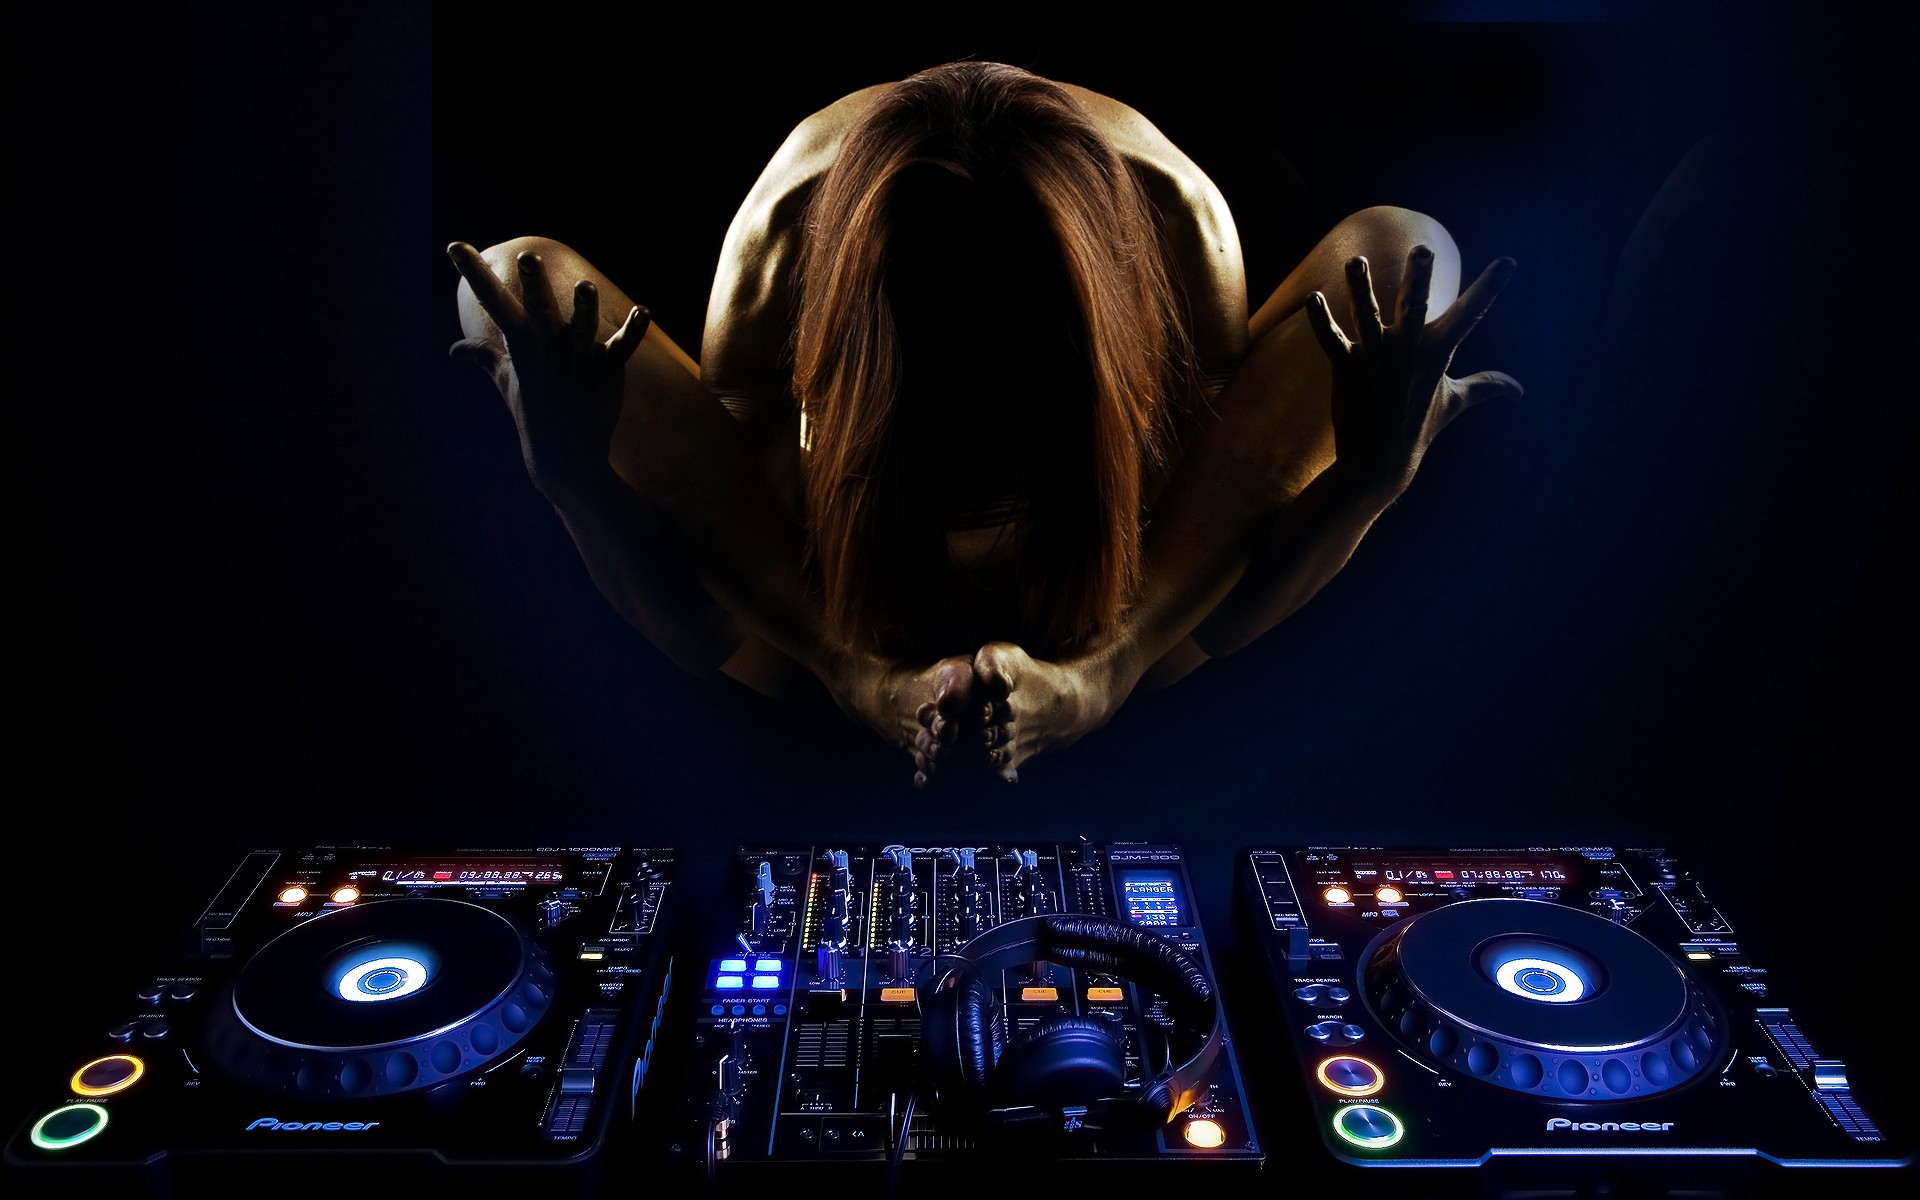 Animated Dj Wallpaper